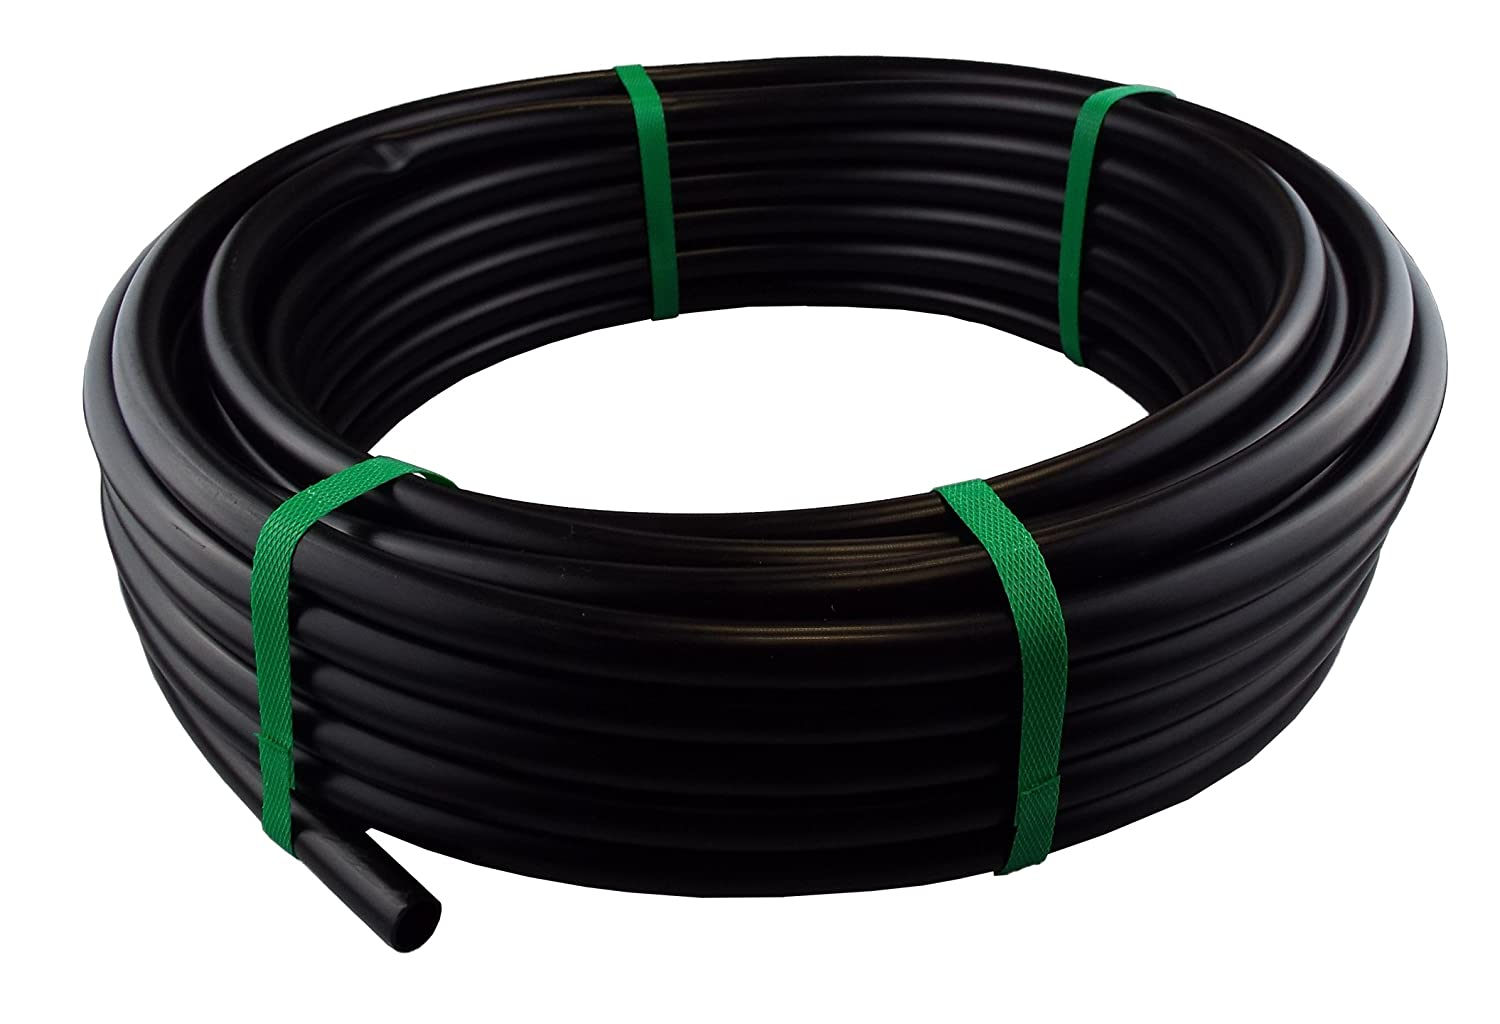 15m(48ft) Water supply pipe for garden irrigation systems ,By Cost Wise® ,the irrigation specialists